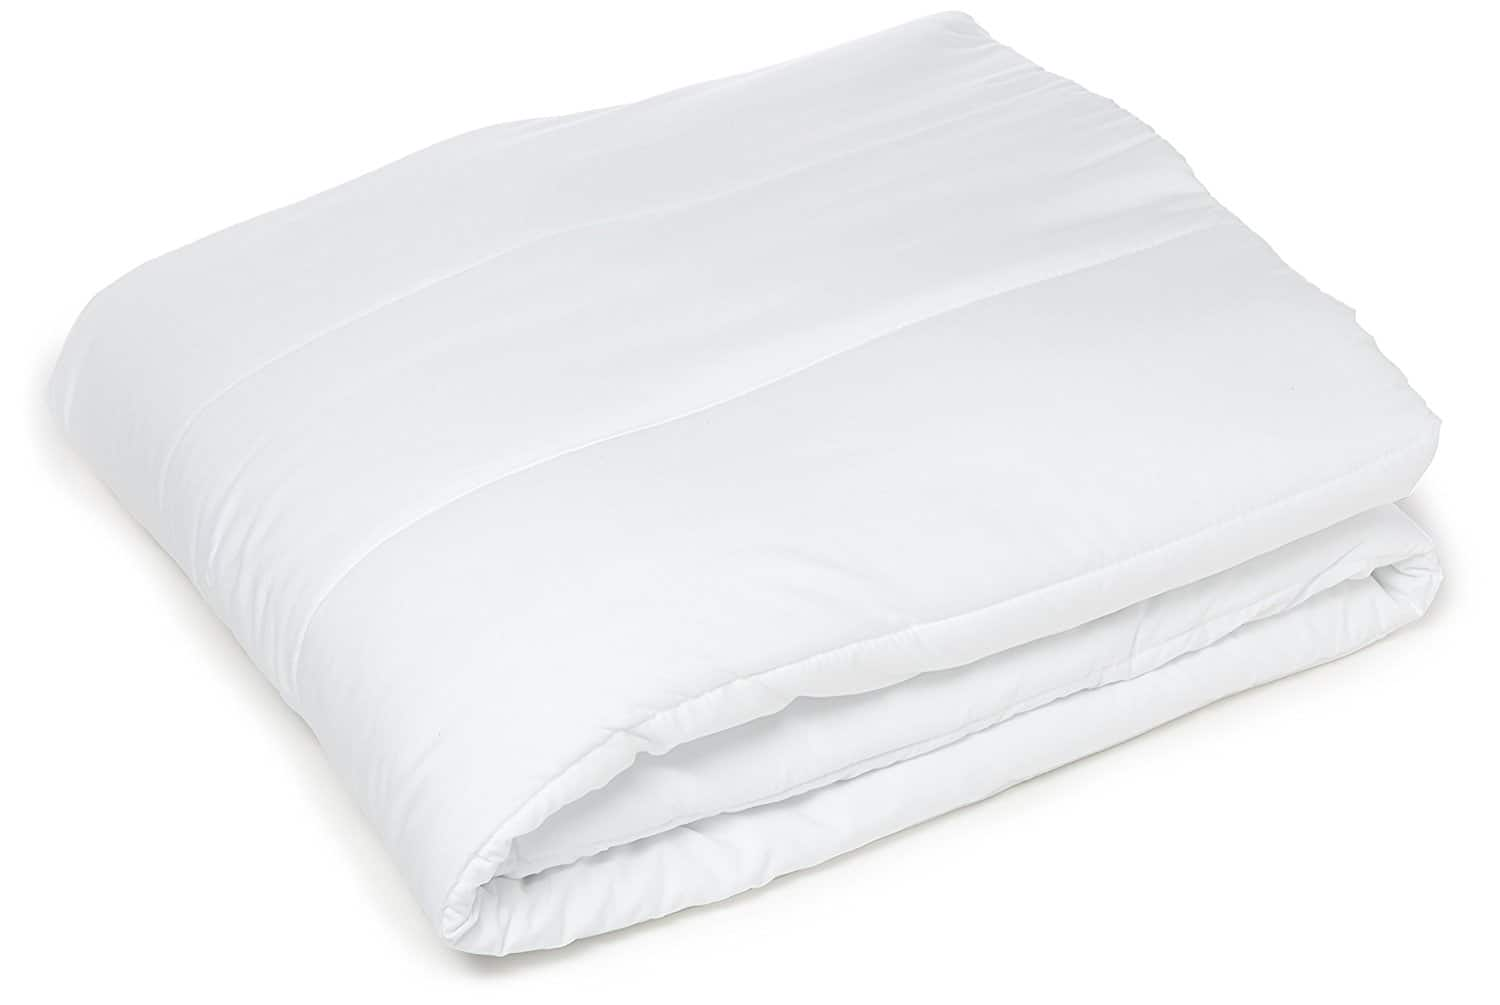 Sunbeam Quilted Heated Mattress Pad with Dual SleekSet Controllers, Queen $47.99